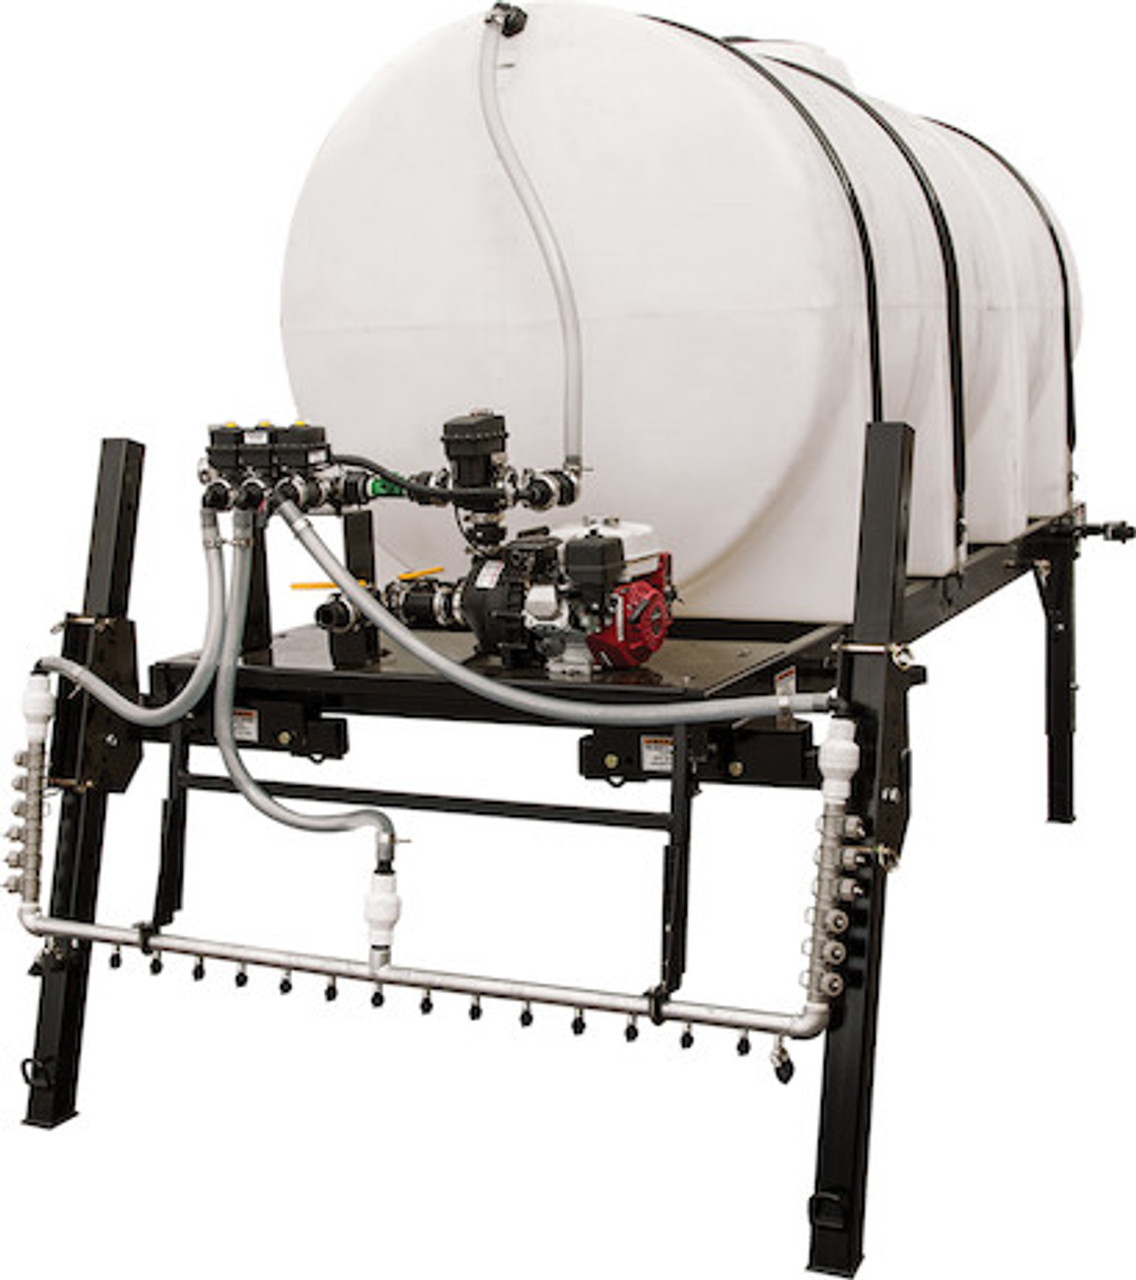 BUYERS SALT DOGG 6191635 1750 Gallon Gas-Powered Anti-Ice System With Three-Lane Spray Bar And Manual Application Rate Control